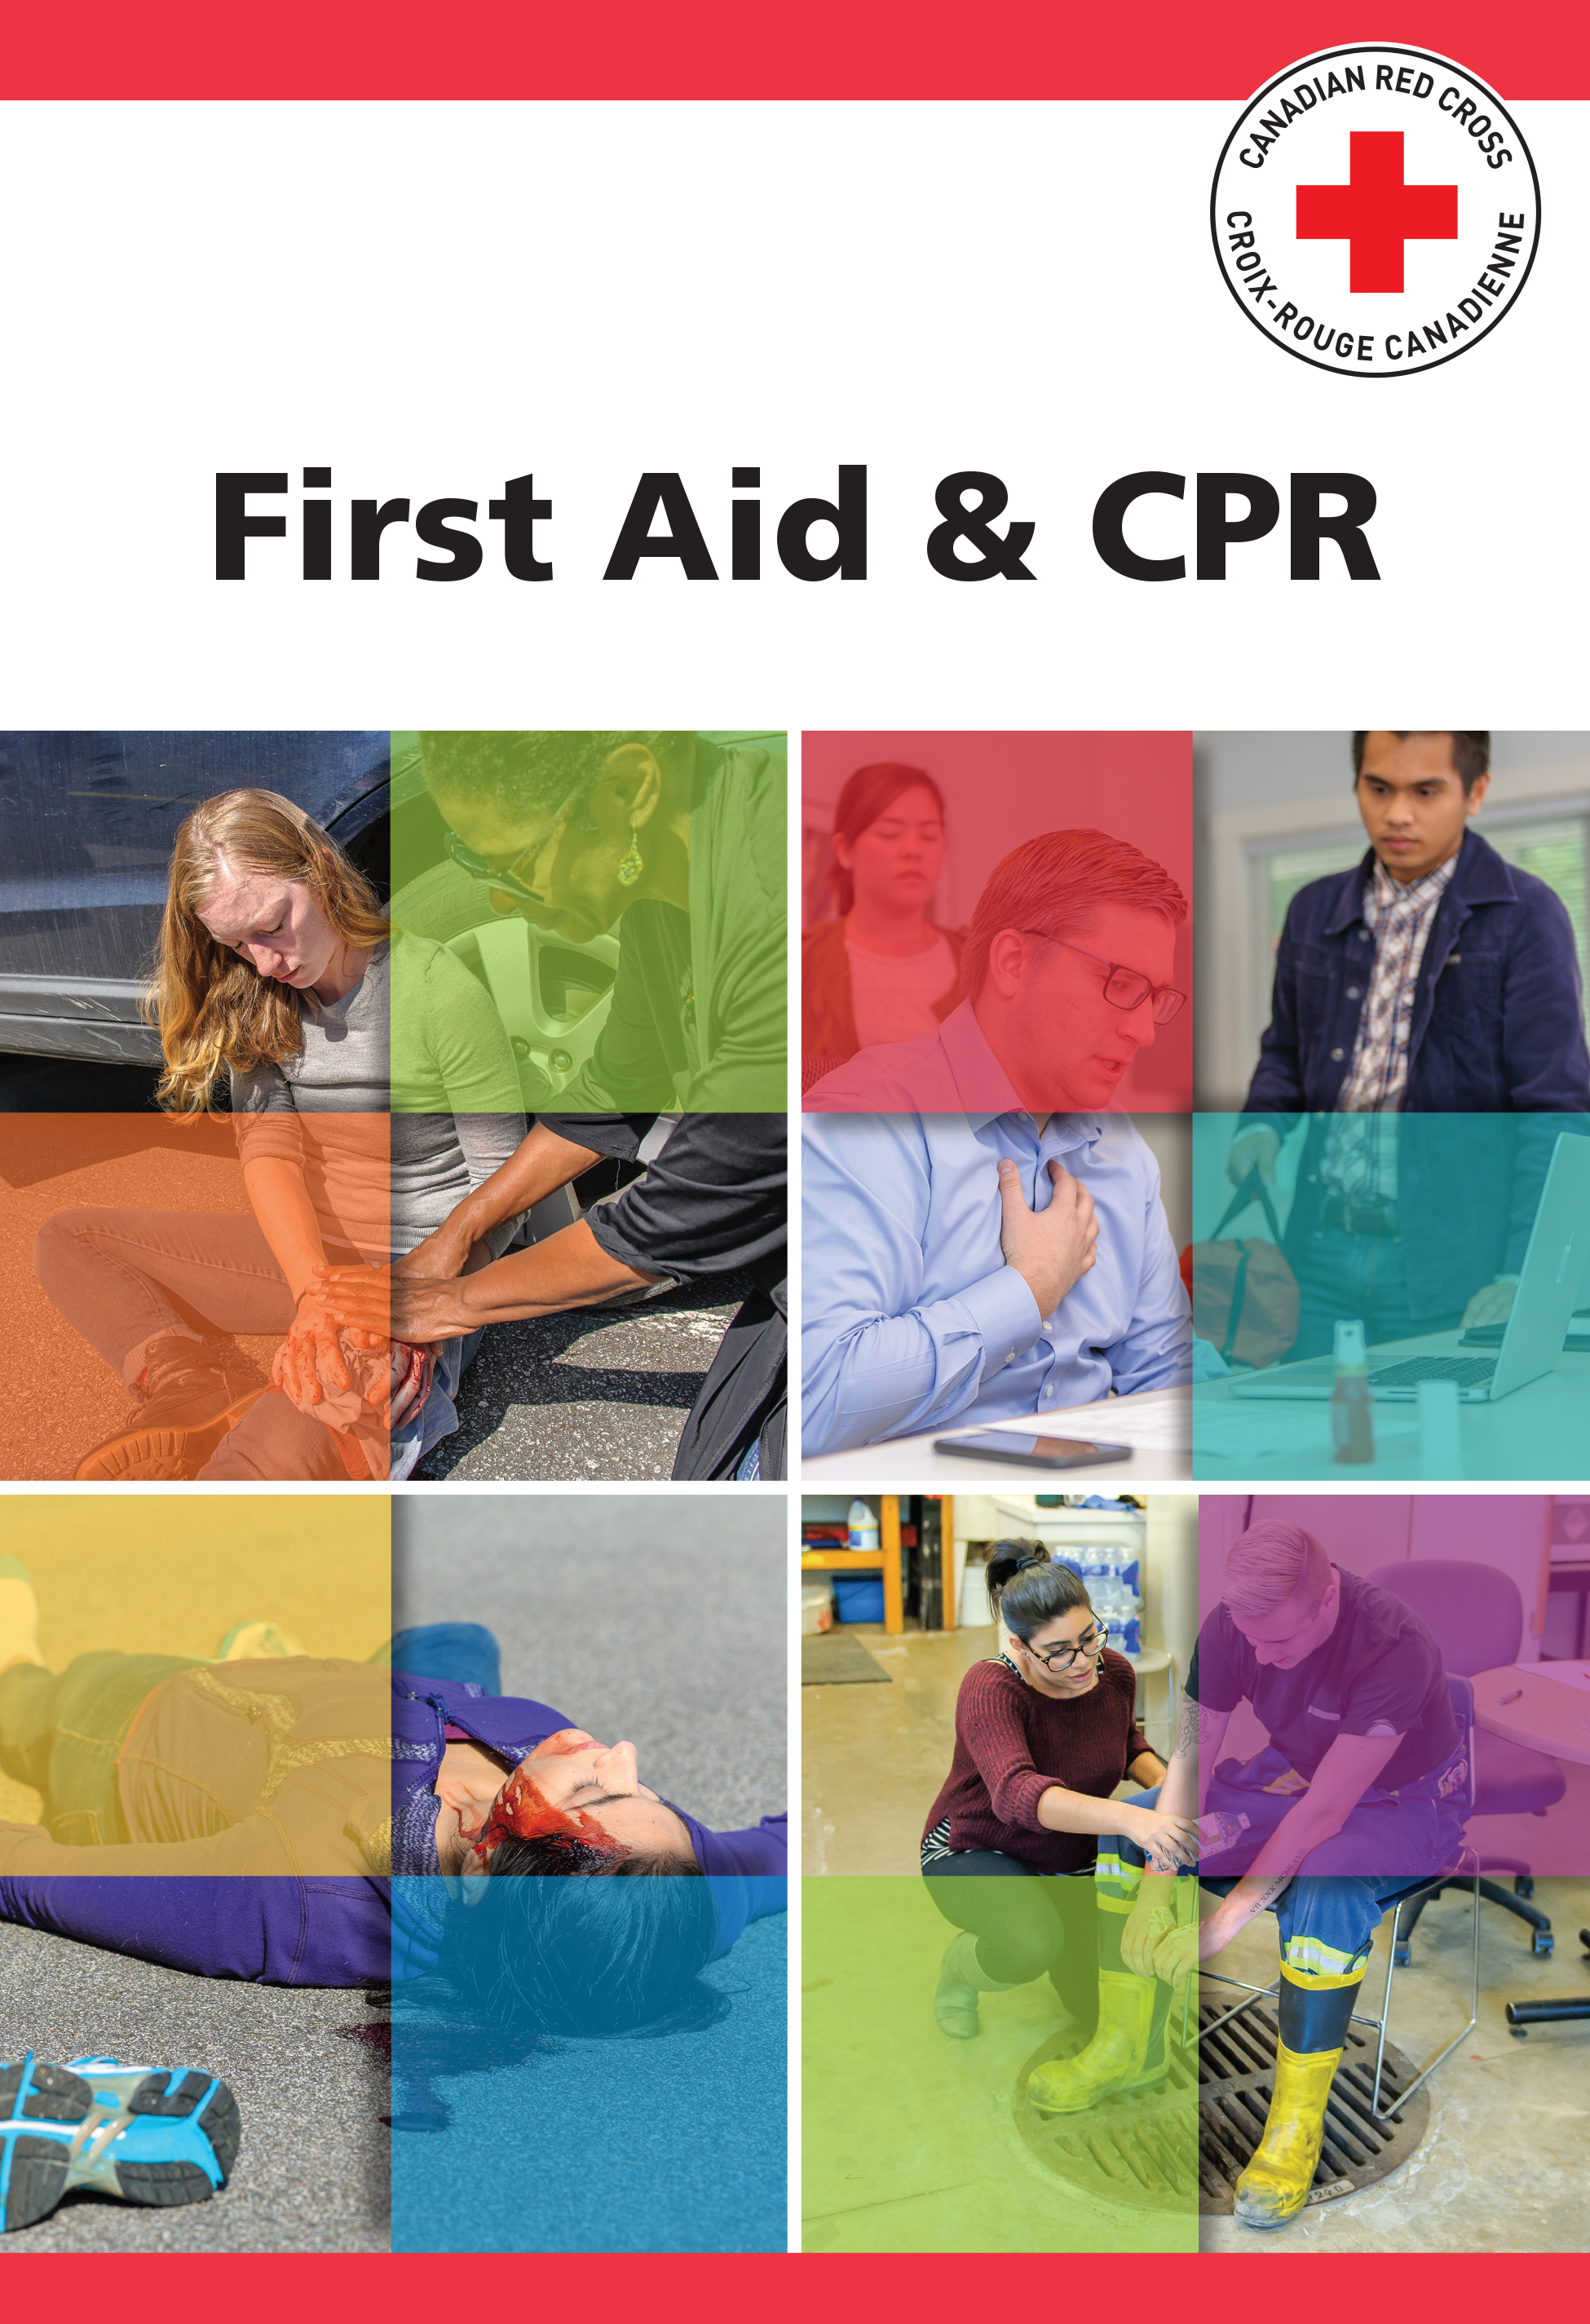 Red Cross CPR and First-Aid Manual image